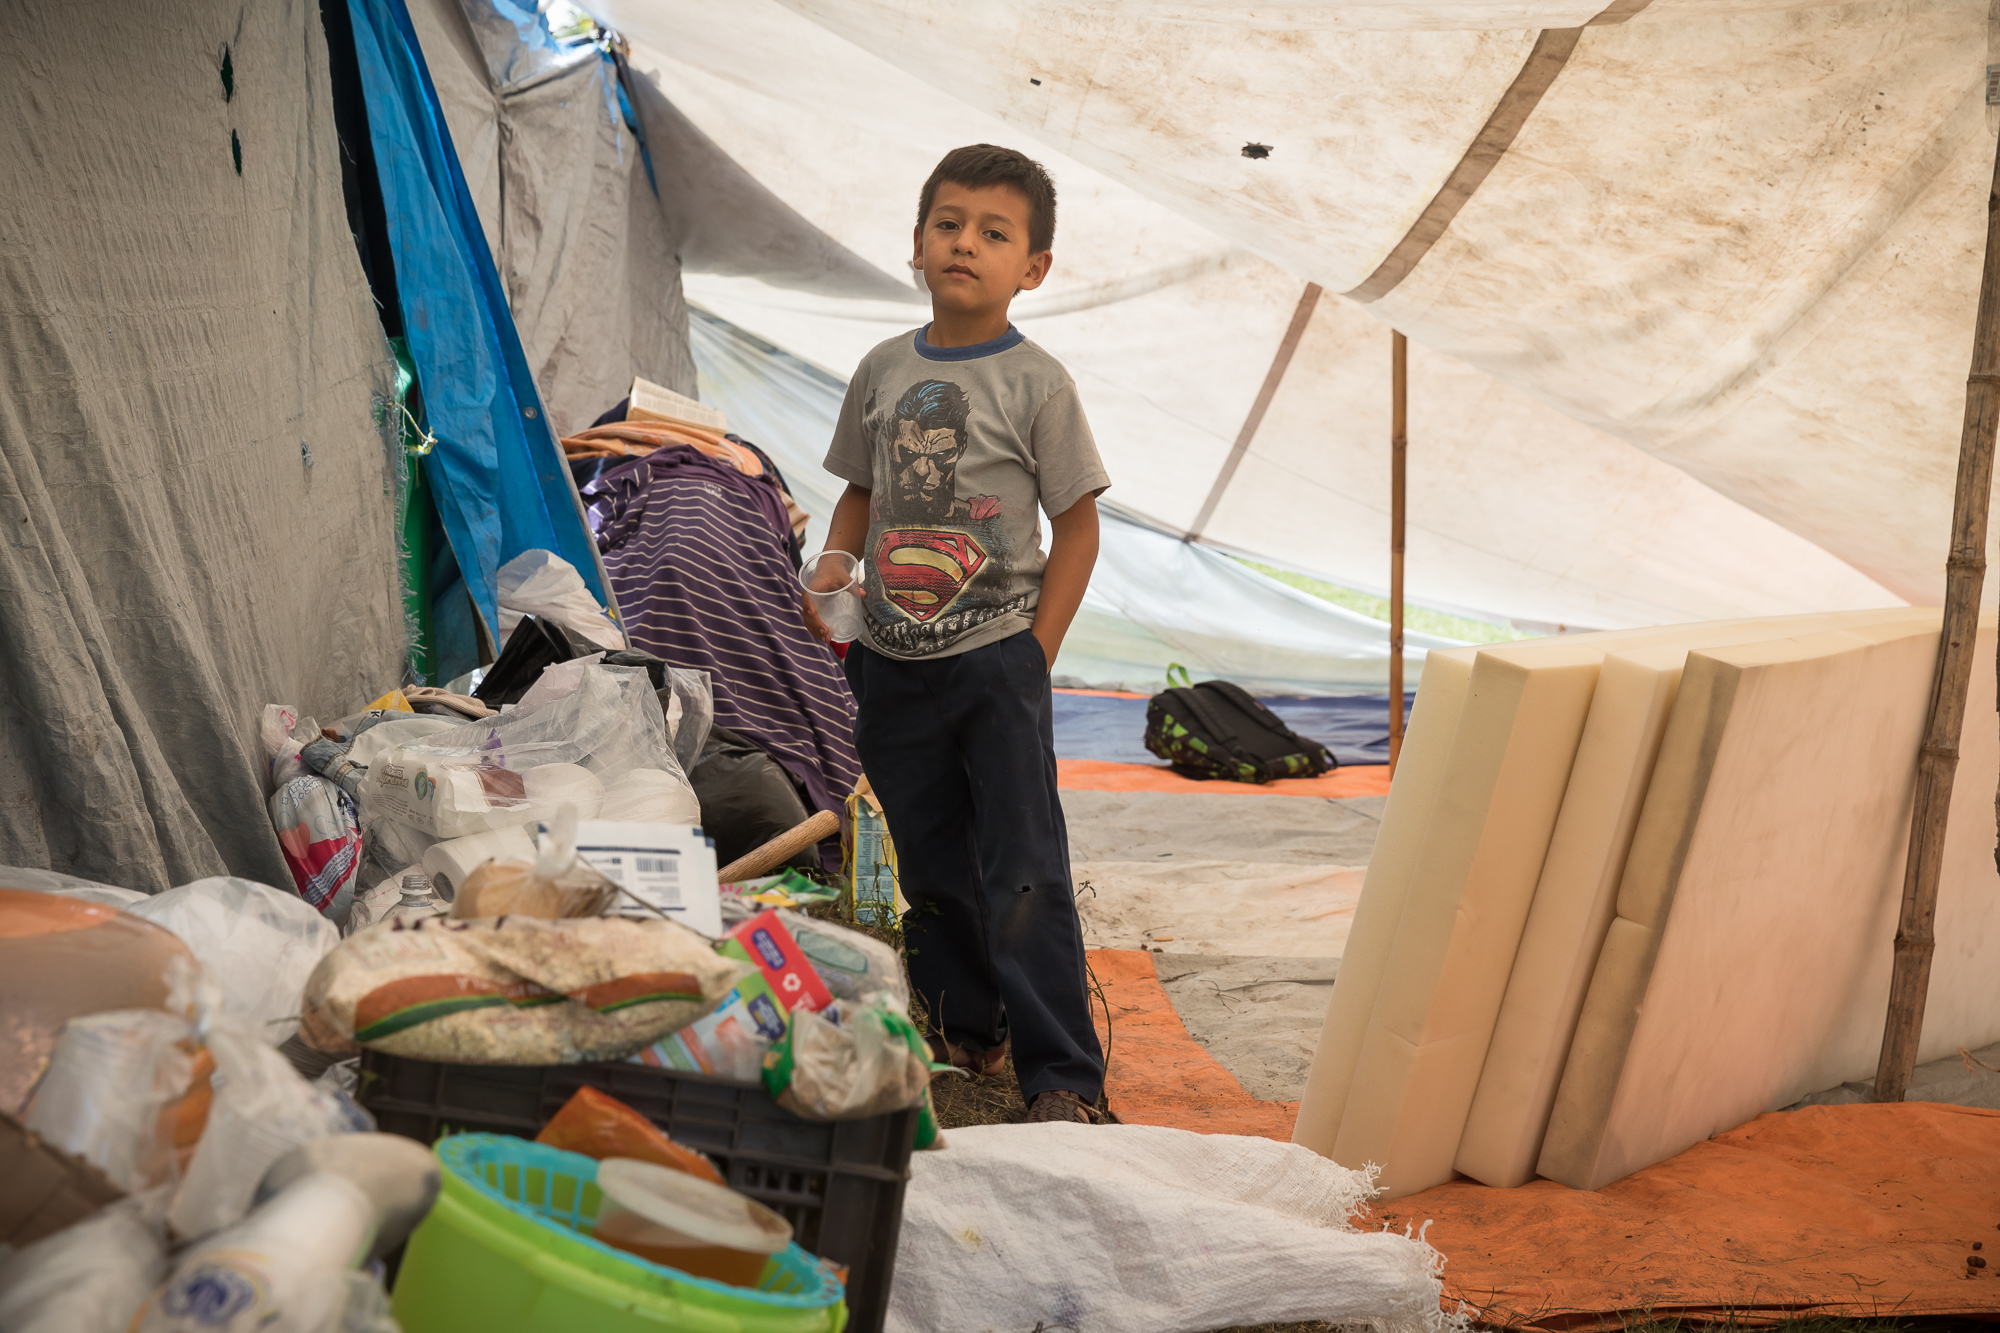 Jorge Martínez Aponte, 7 years old, went from living in a cosy home one day to living with his family and other 8 families in a makeshift tent refuge the next. PHOTO: Francisco Alcala Torreslanda